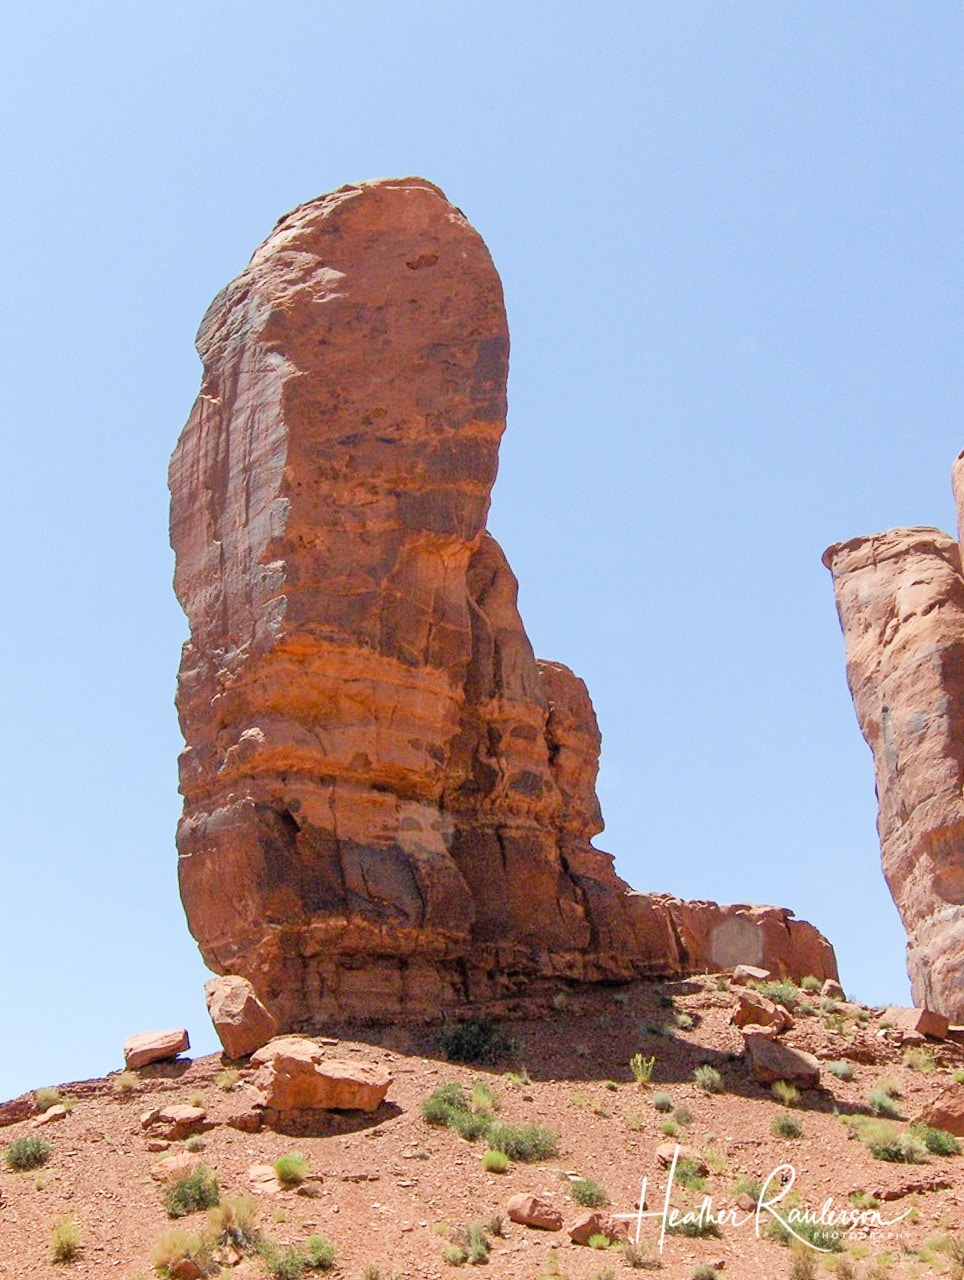 Thumb on Camel Butte